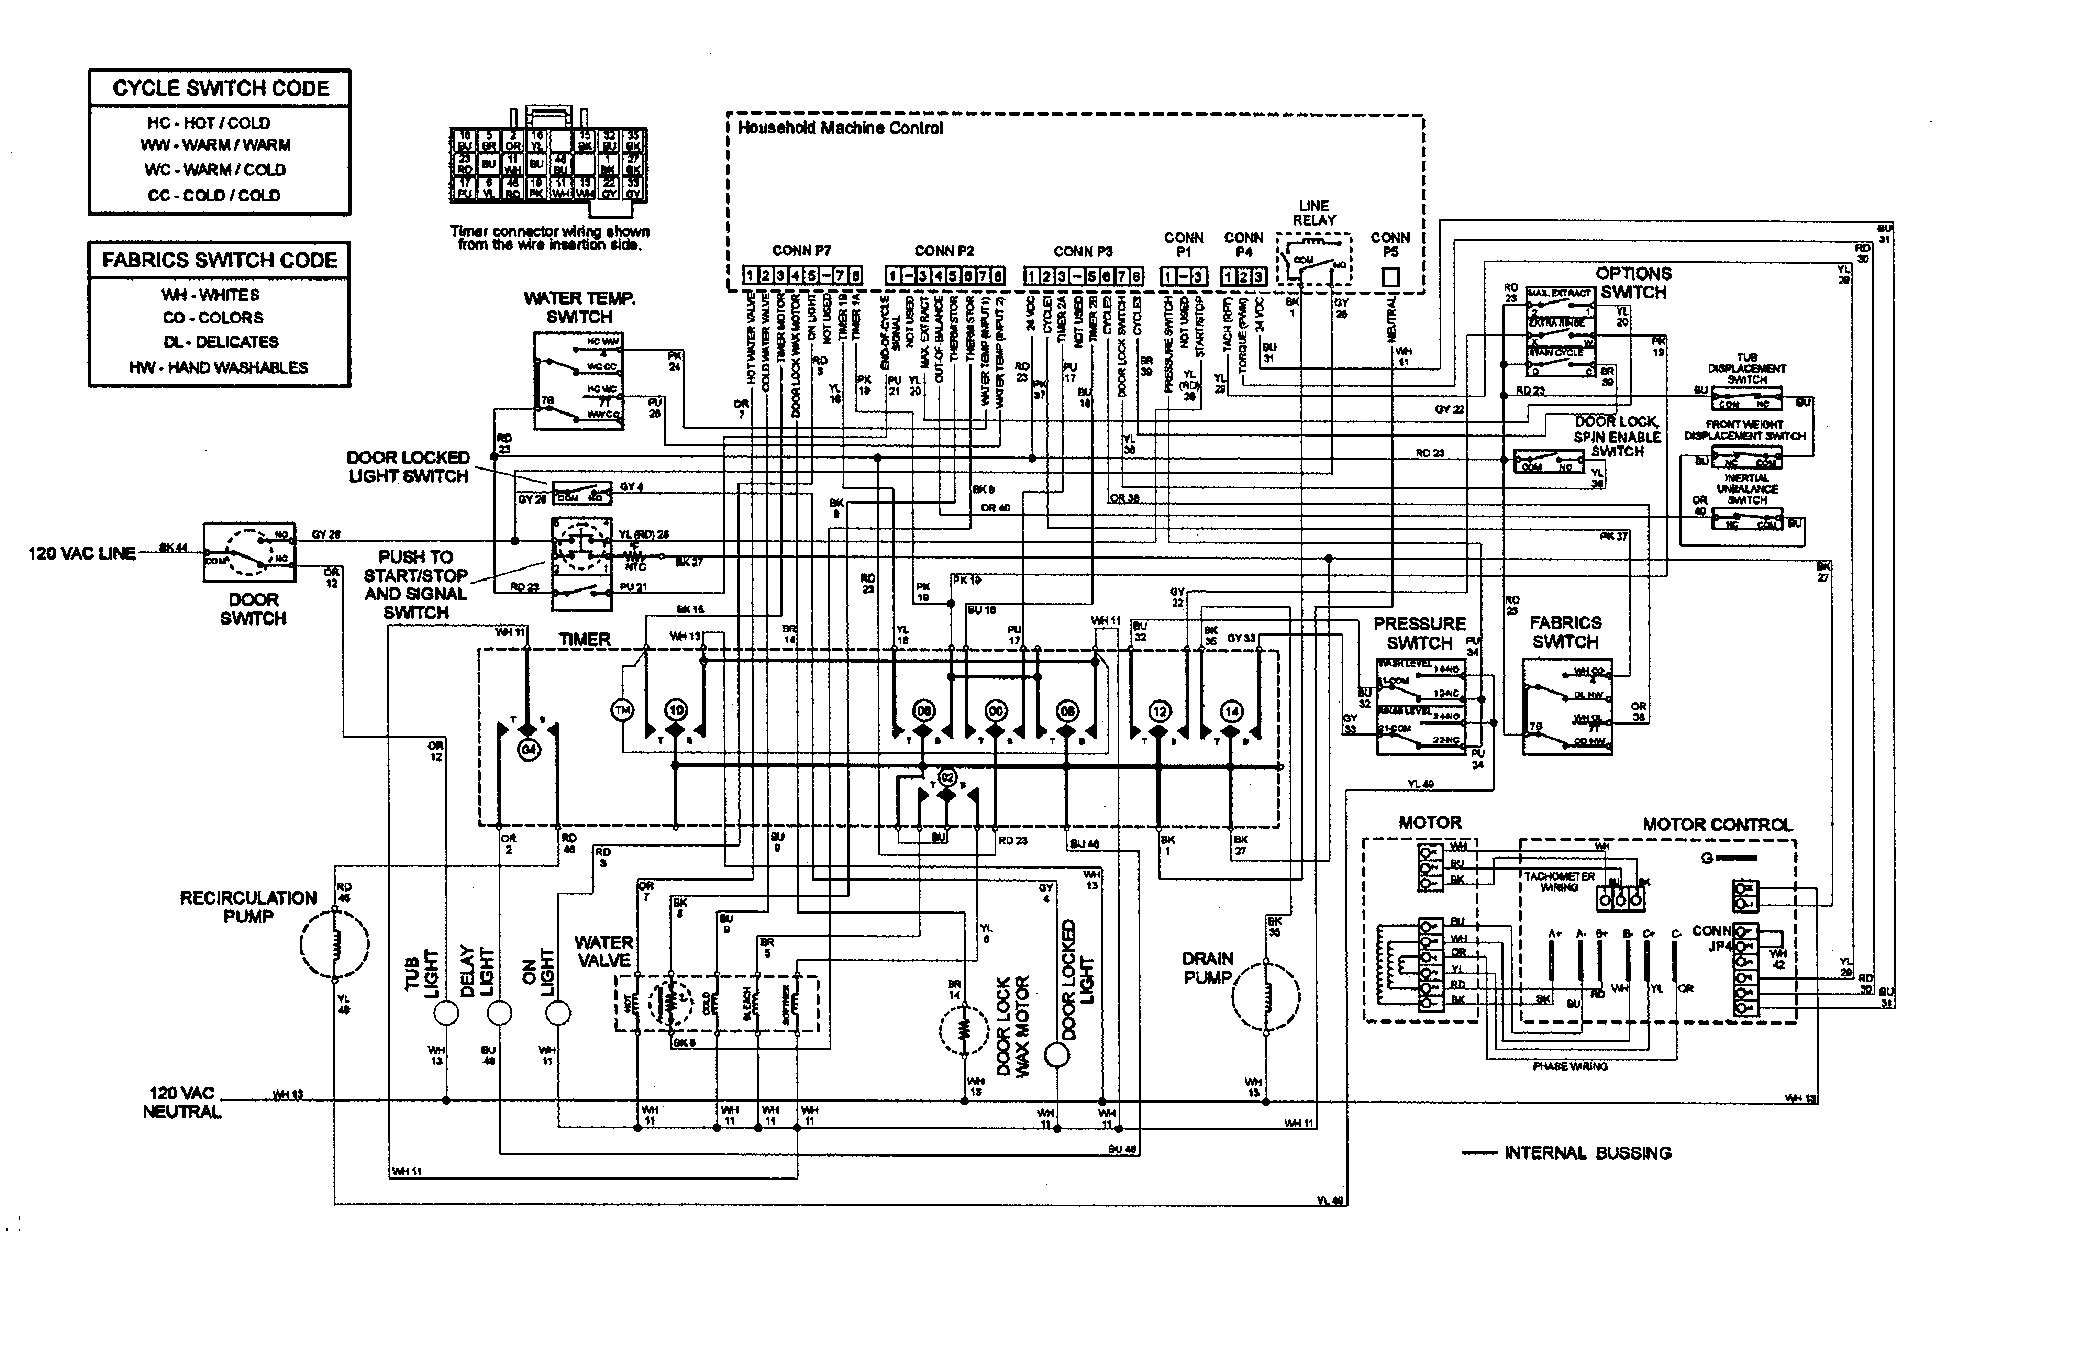 Wiring Diagram For Maytag Neptune Washer - All Wiring Diagram on